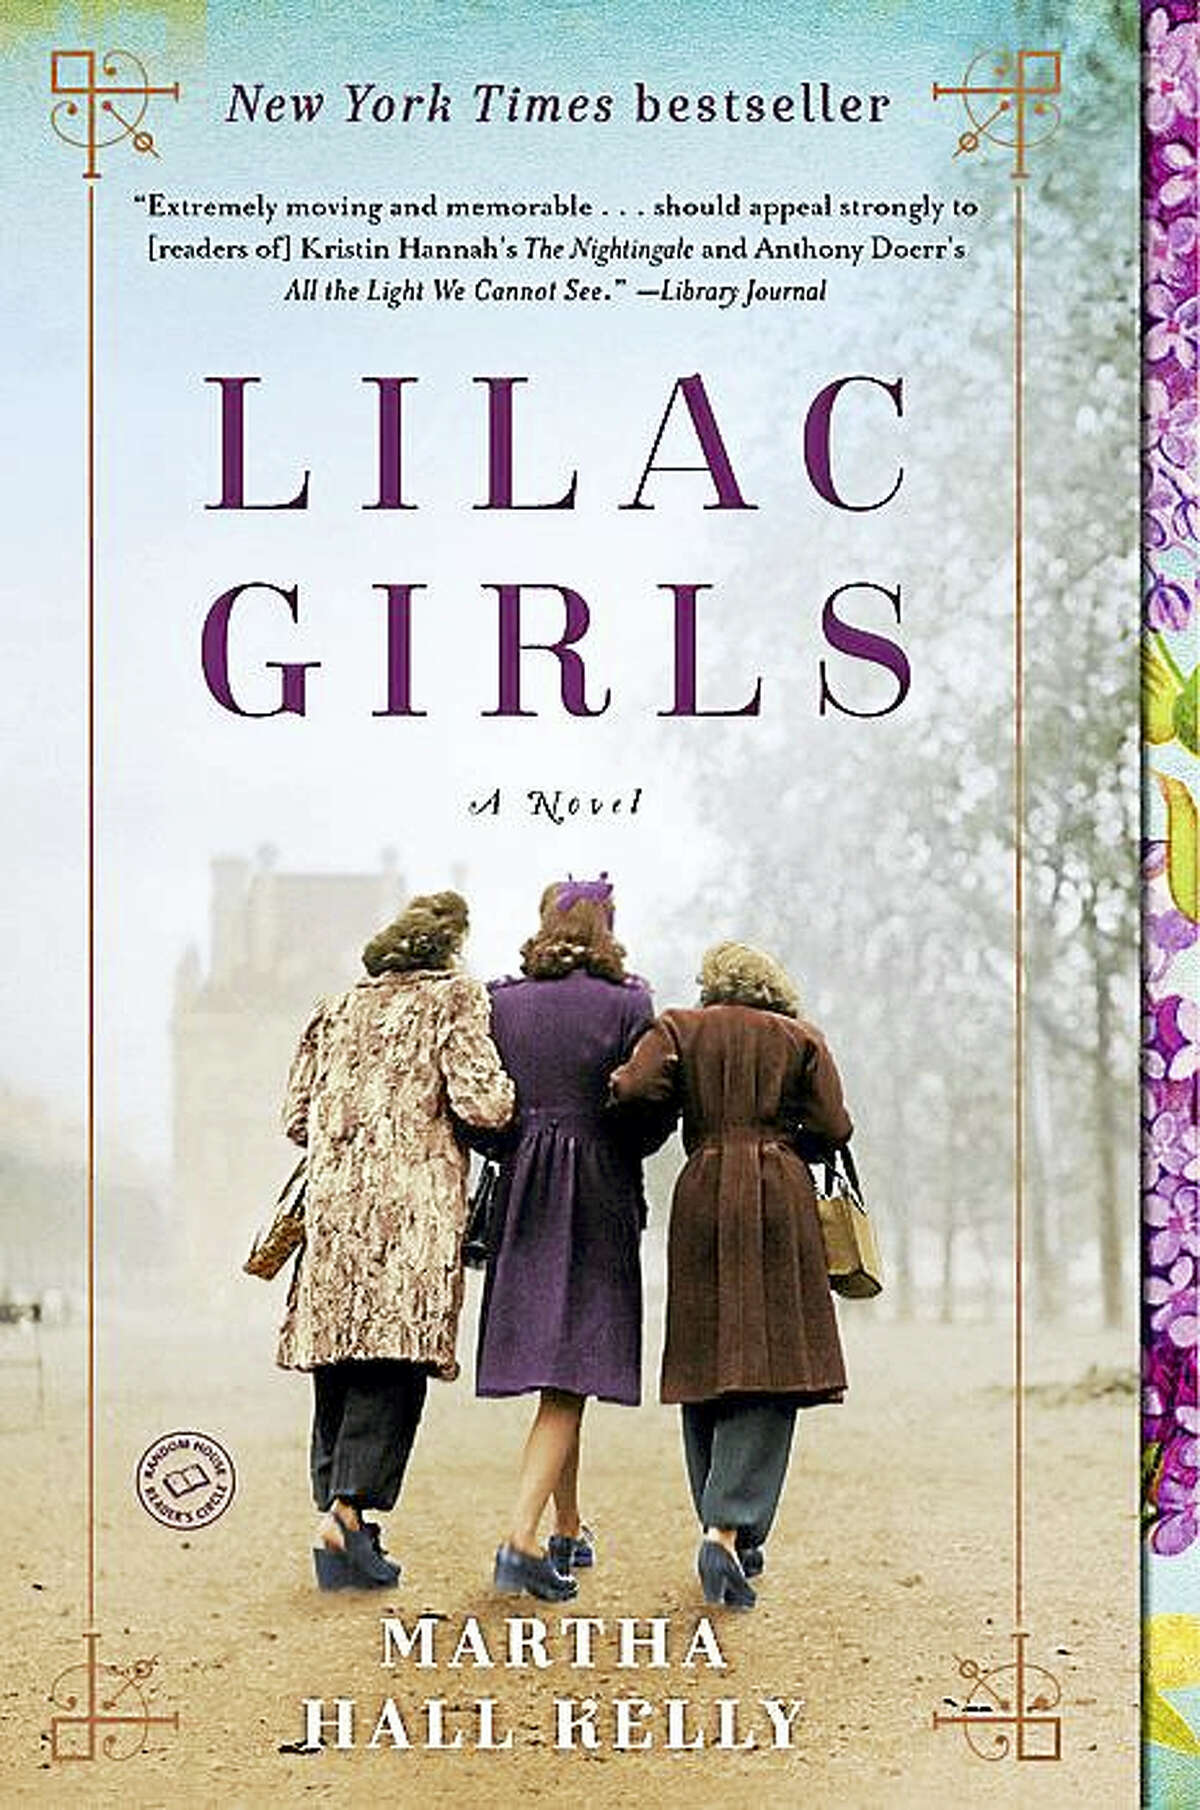 """Martha Hall Kelly will discuss her book, """"Lilac Girls"""" at the Bellamy-Ferriday House & Garden July 15."""